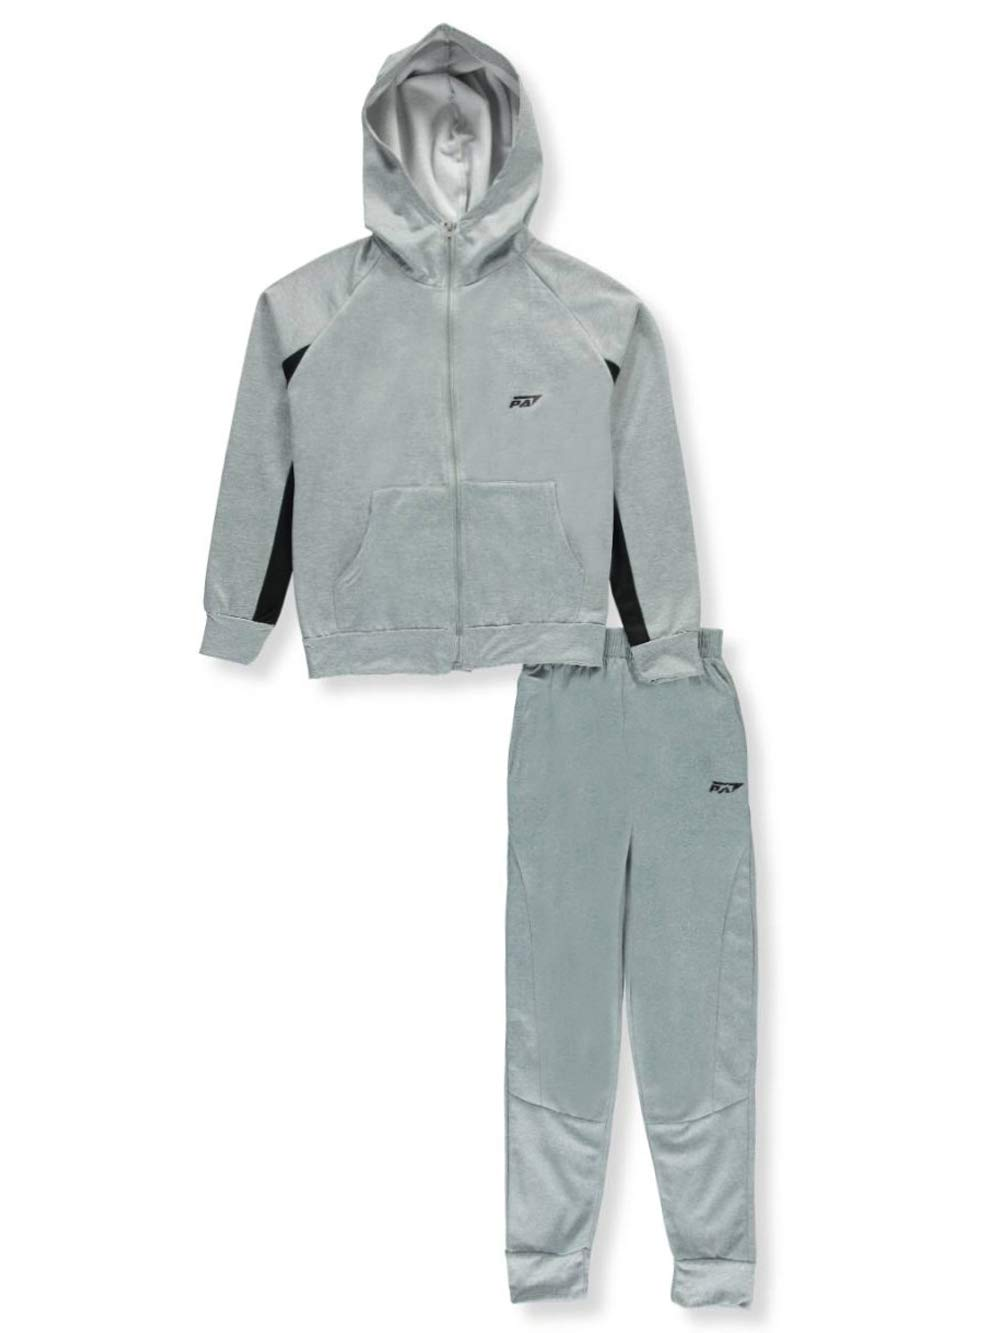 Pro Athlete Big Boys' 2-Piece Fleece Sweatsuit